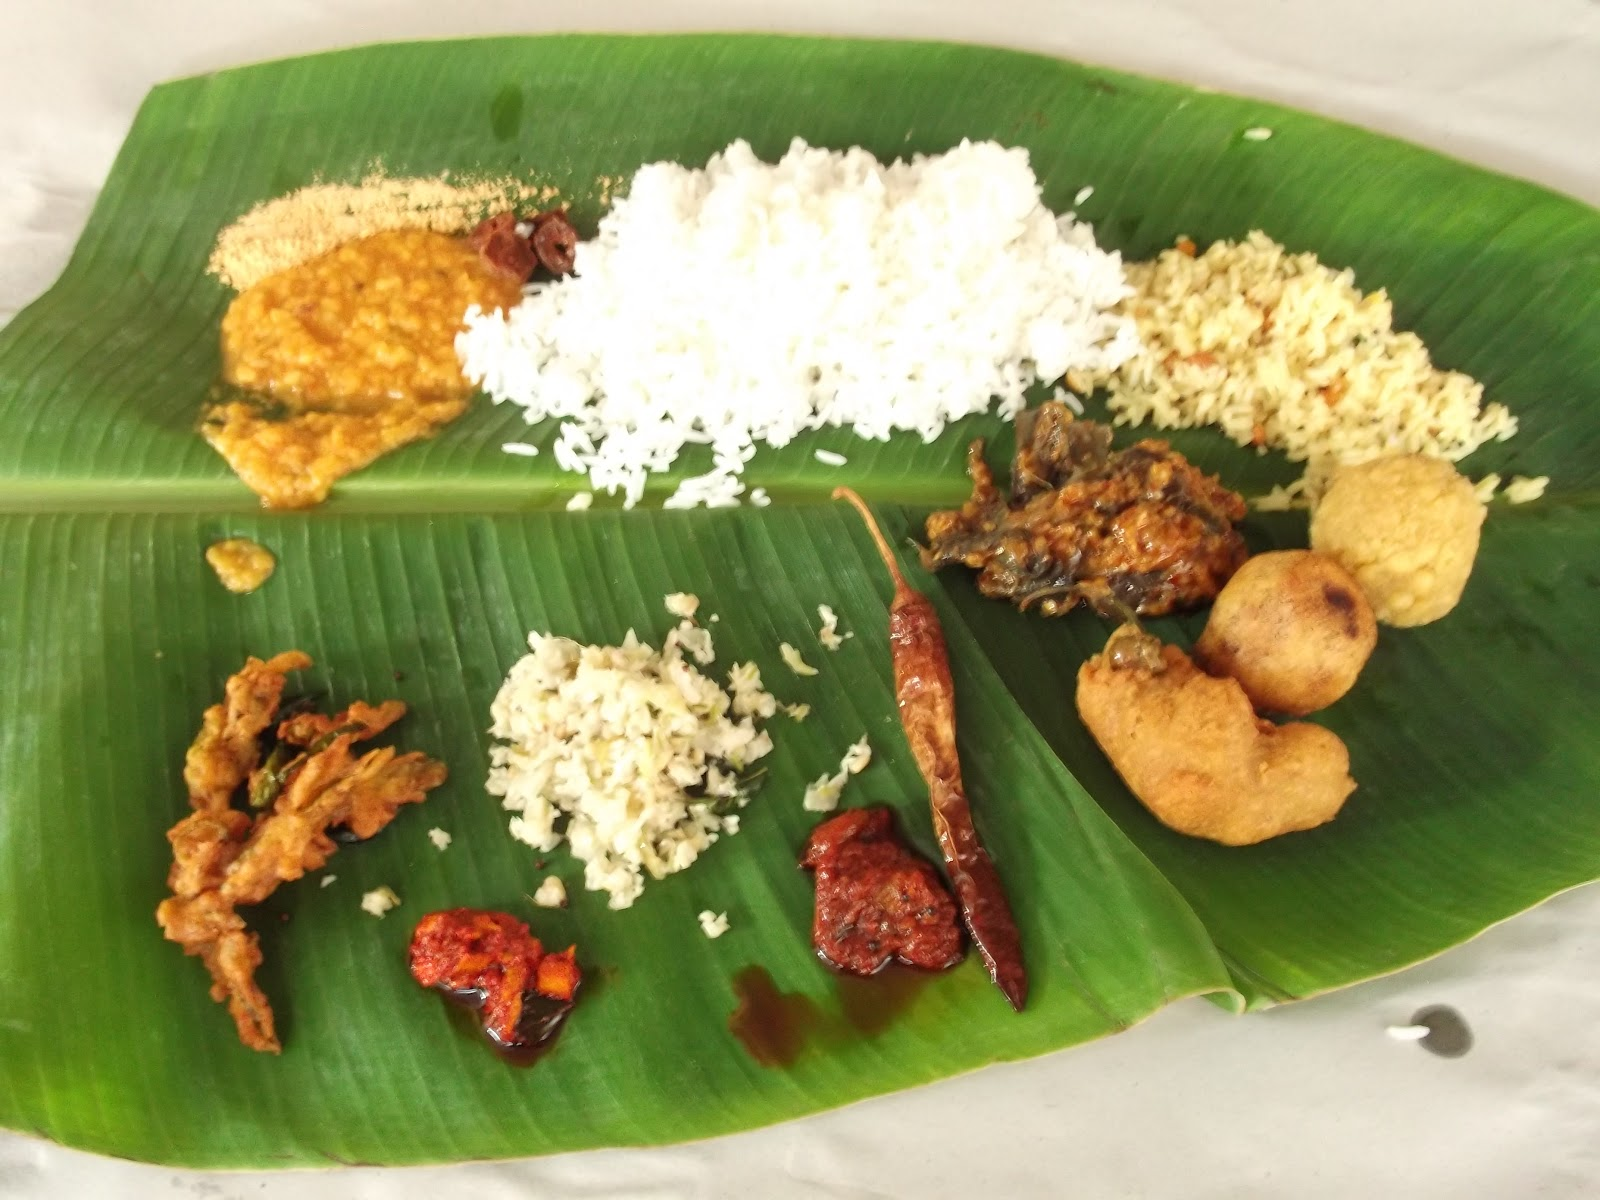 Andhra meals in chennai hungryforever food blog andhra meals in chennai forumfinder Image collections